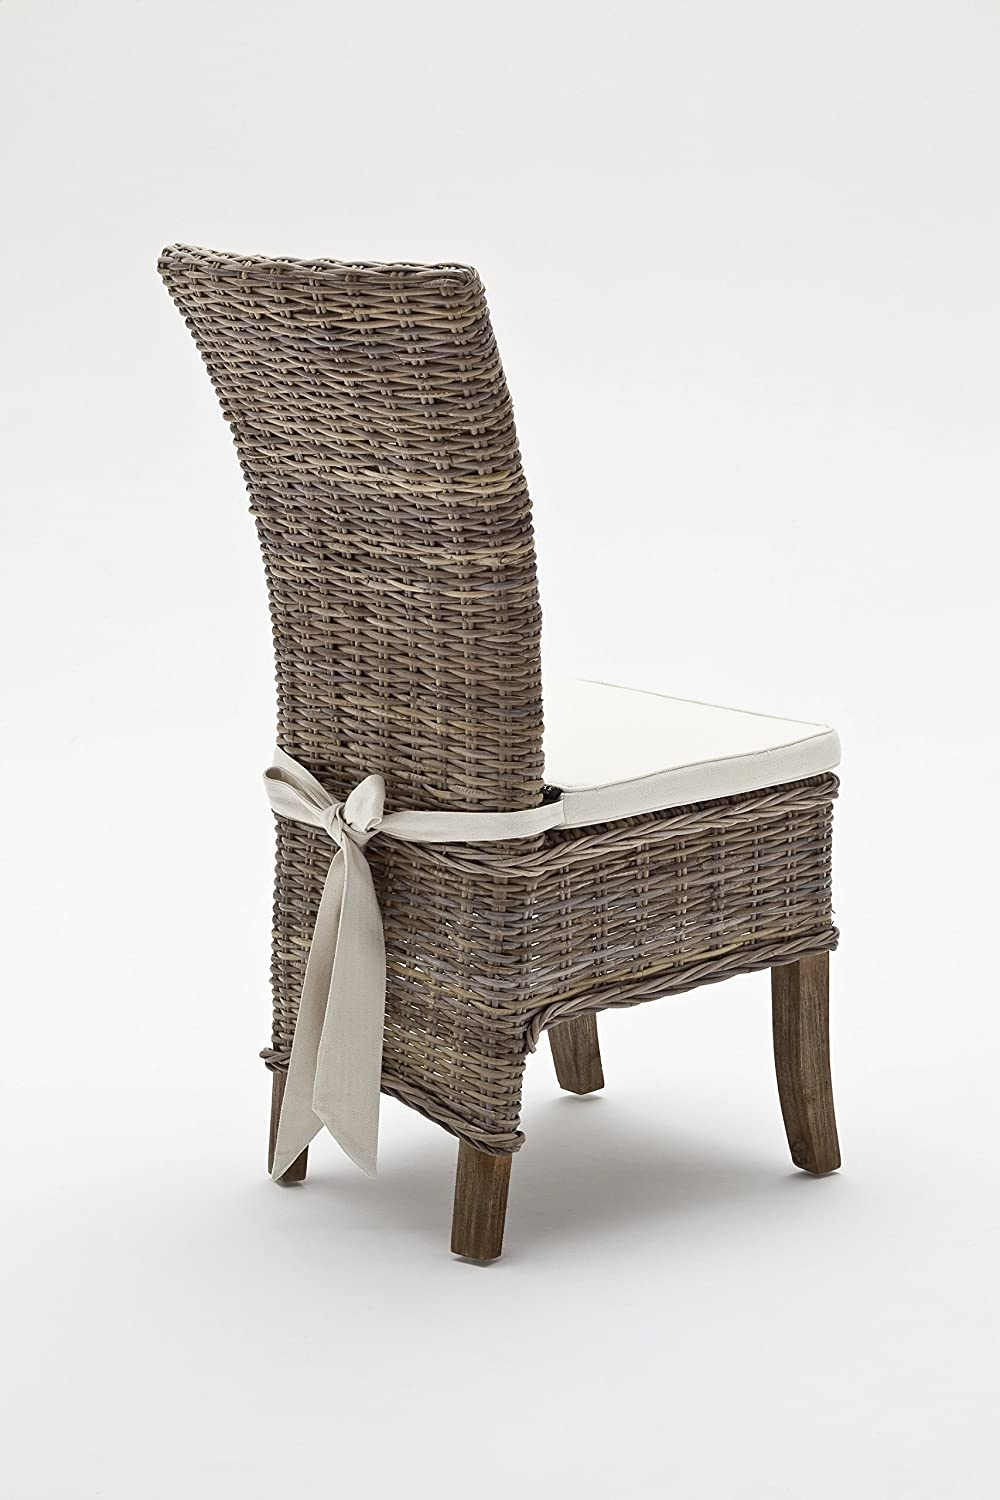 dining chairs with cushions. amazon.com - novasolo wickerworks salsa dining chair with cushion, gray chairs cushions